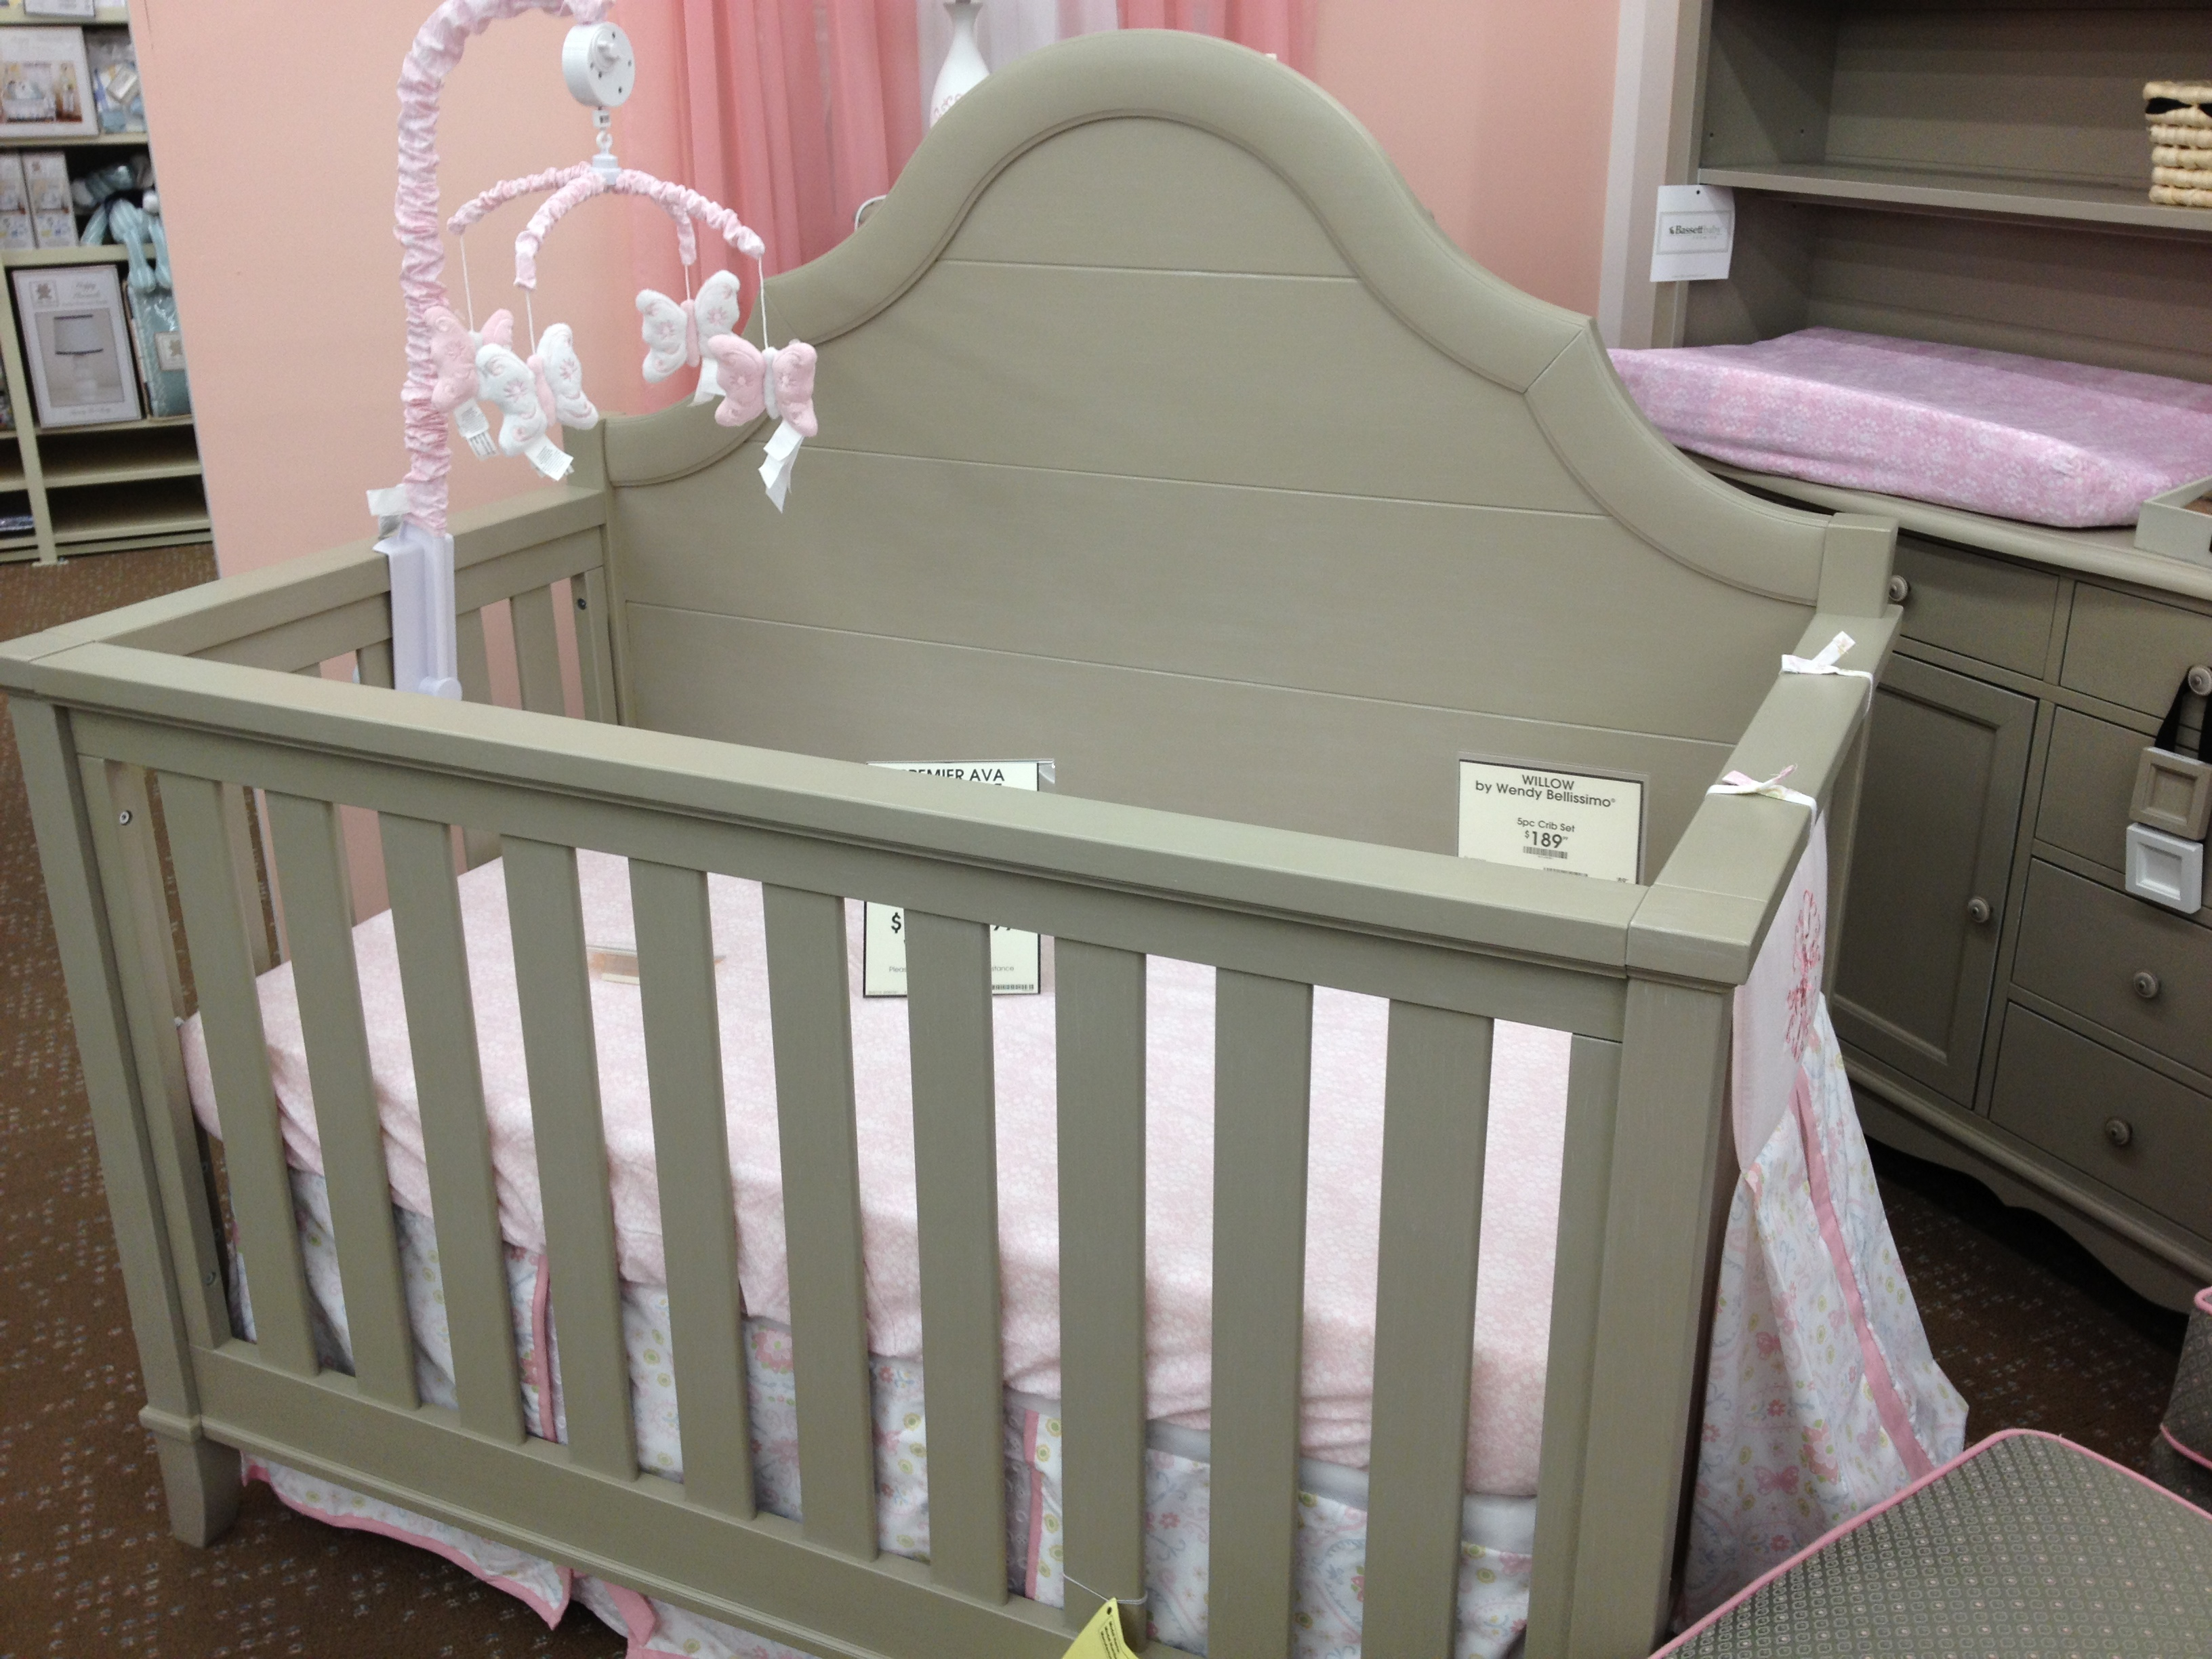 Bassett Baby Crib | Babies R Us Rocking Chairs | Crib Tent Walmart & Furniture: Bassett Baby Crib With Sophisticated And Graceful ...